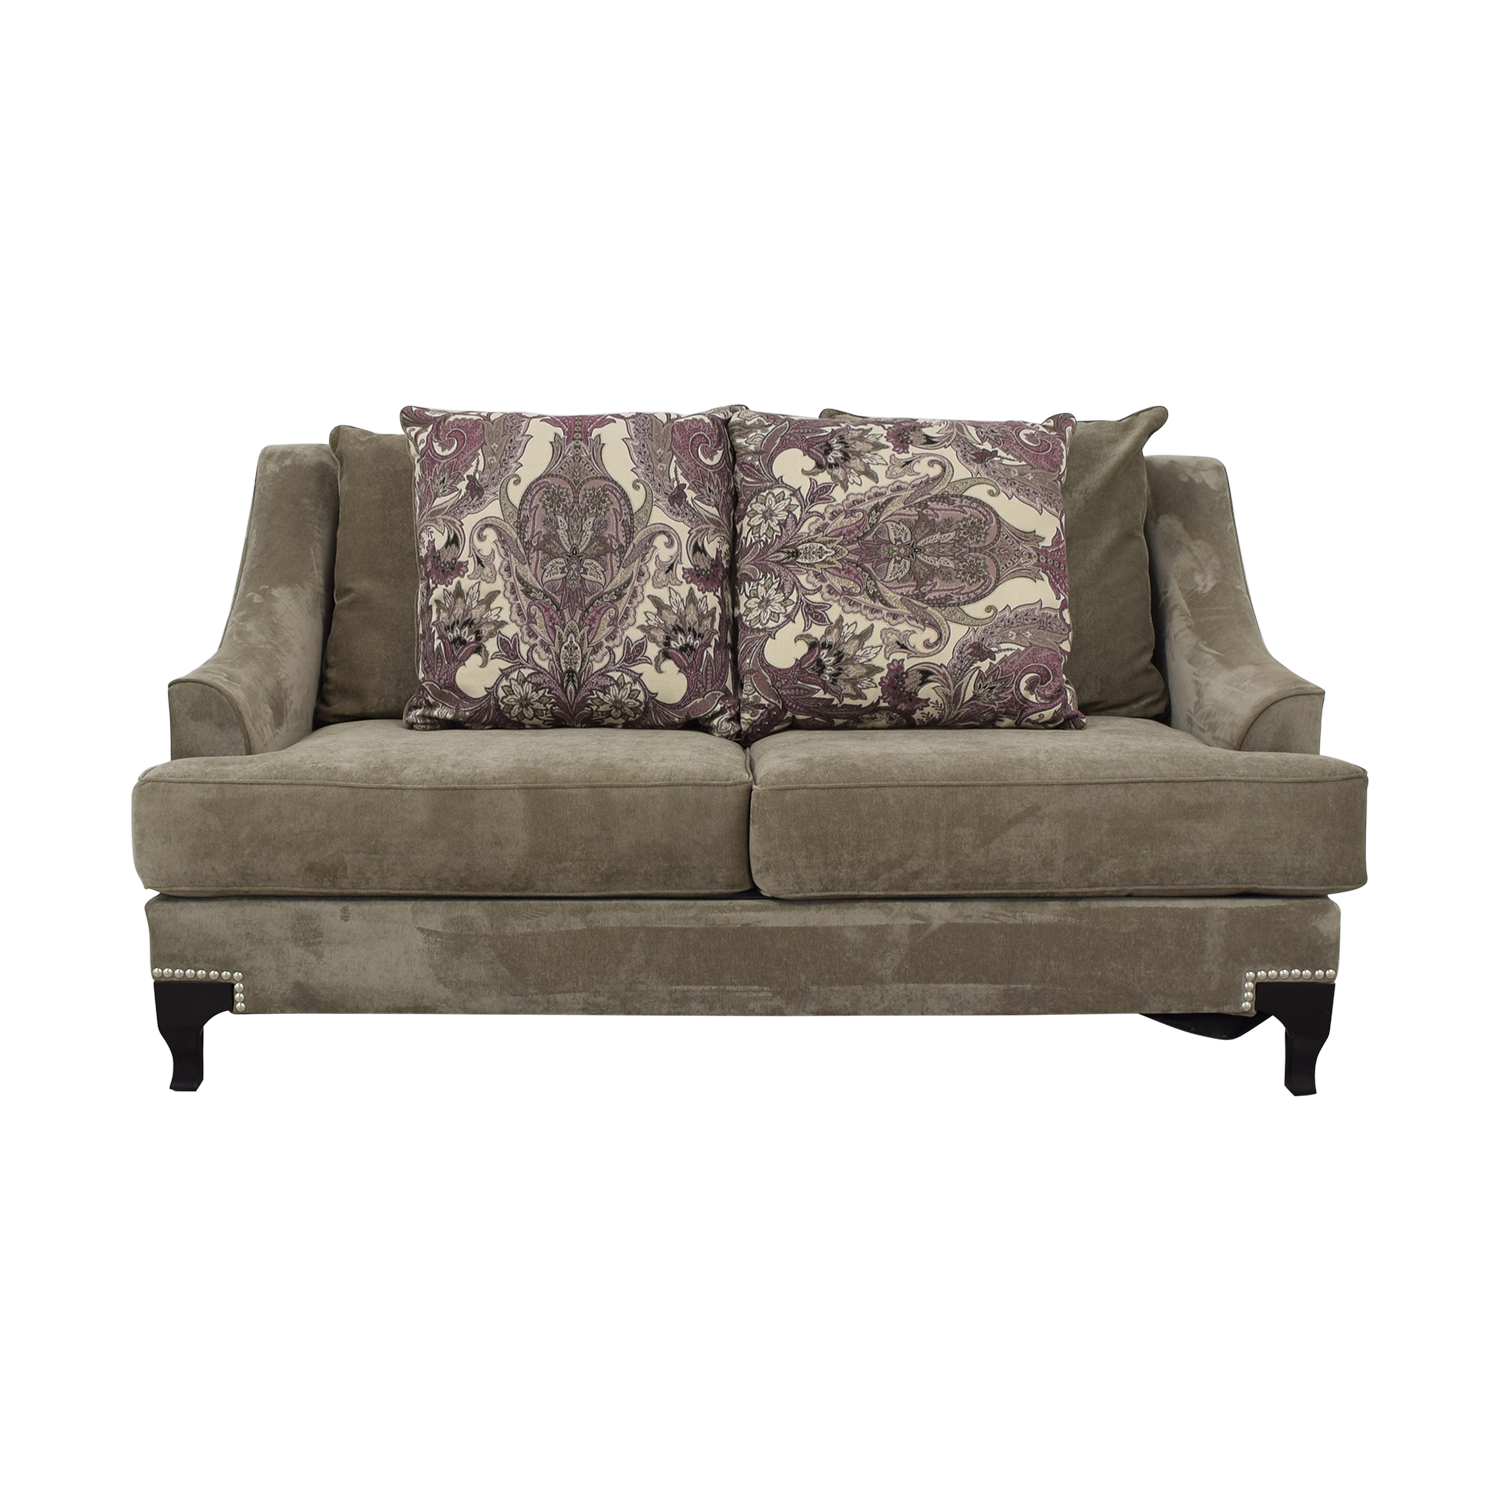 Furniture of America Furniture of America Loveseat discount